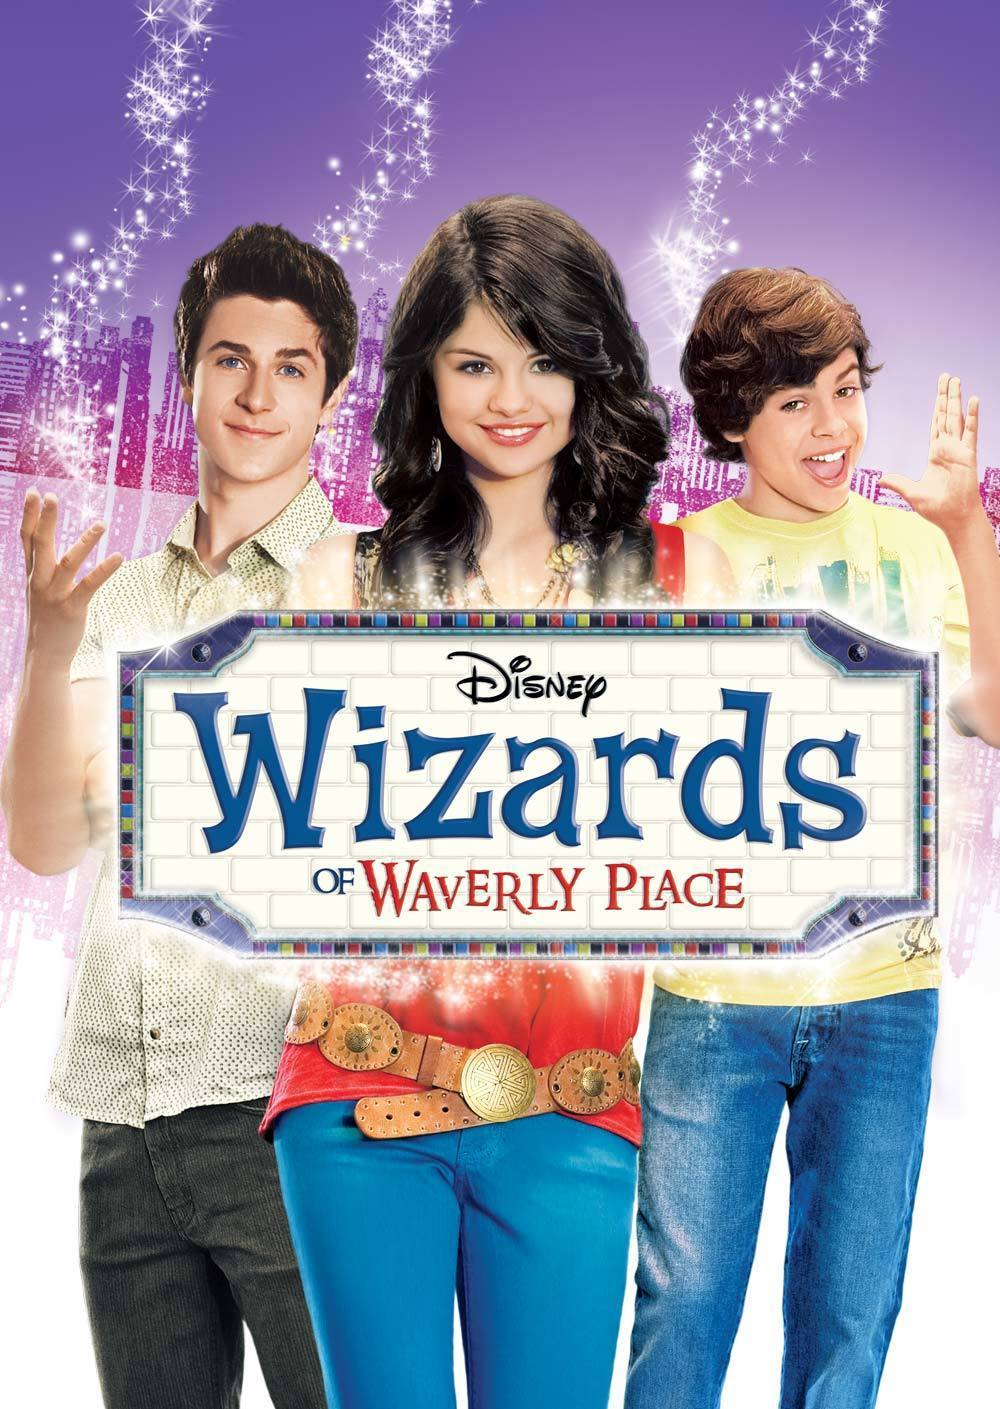 Wizards of Waverly Place (TV Series 2007–2012) - Episodes ... |The Wizards Wiverly Place